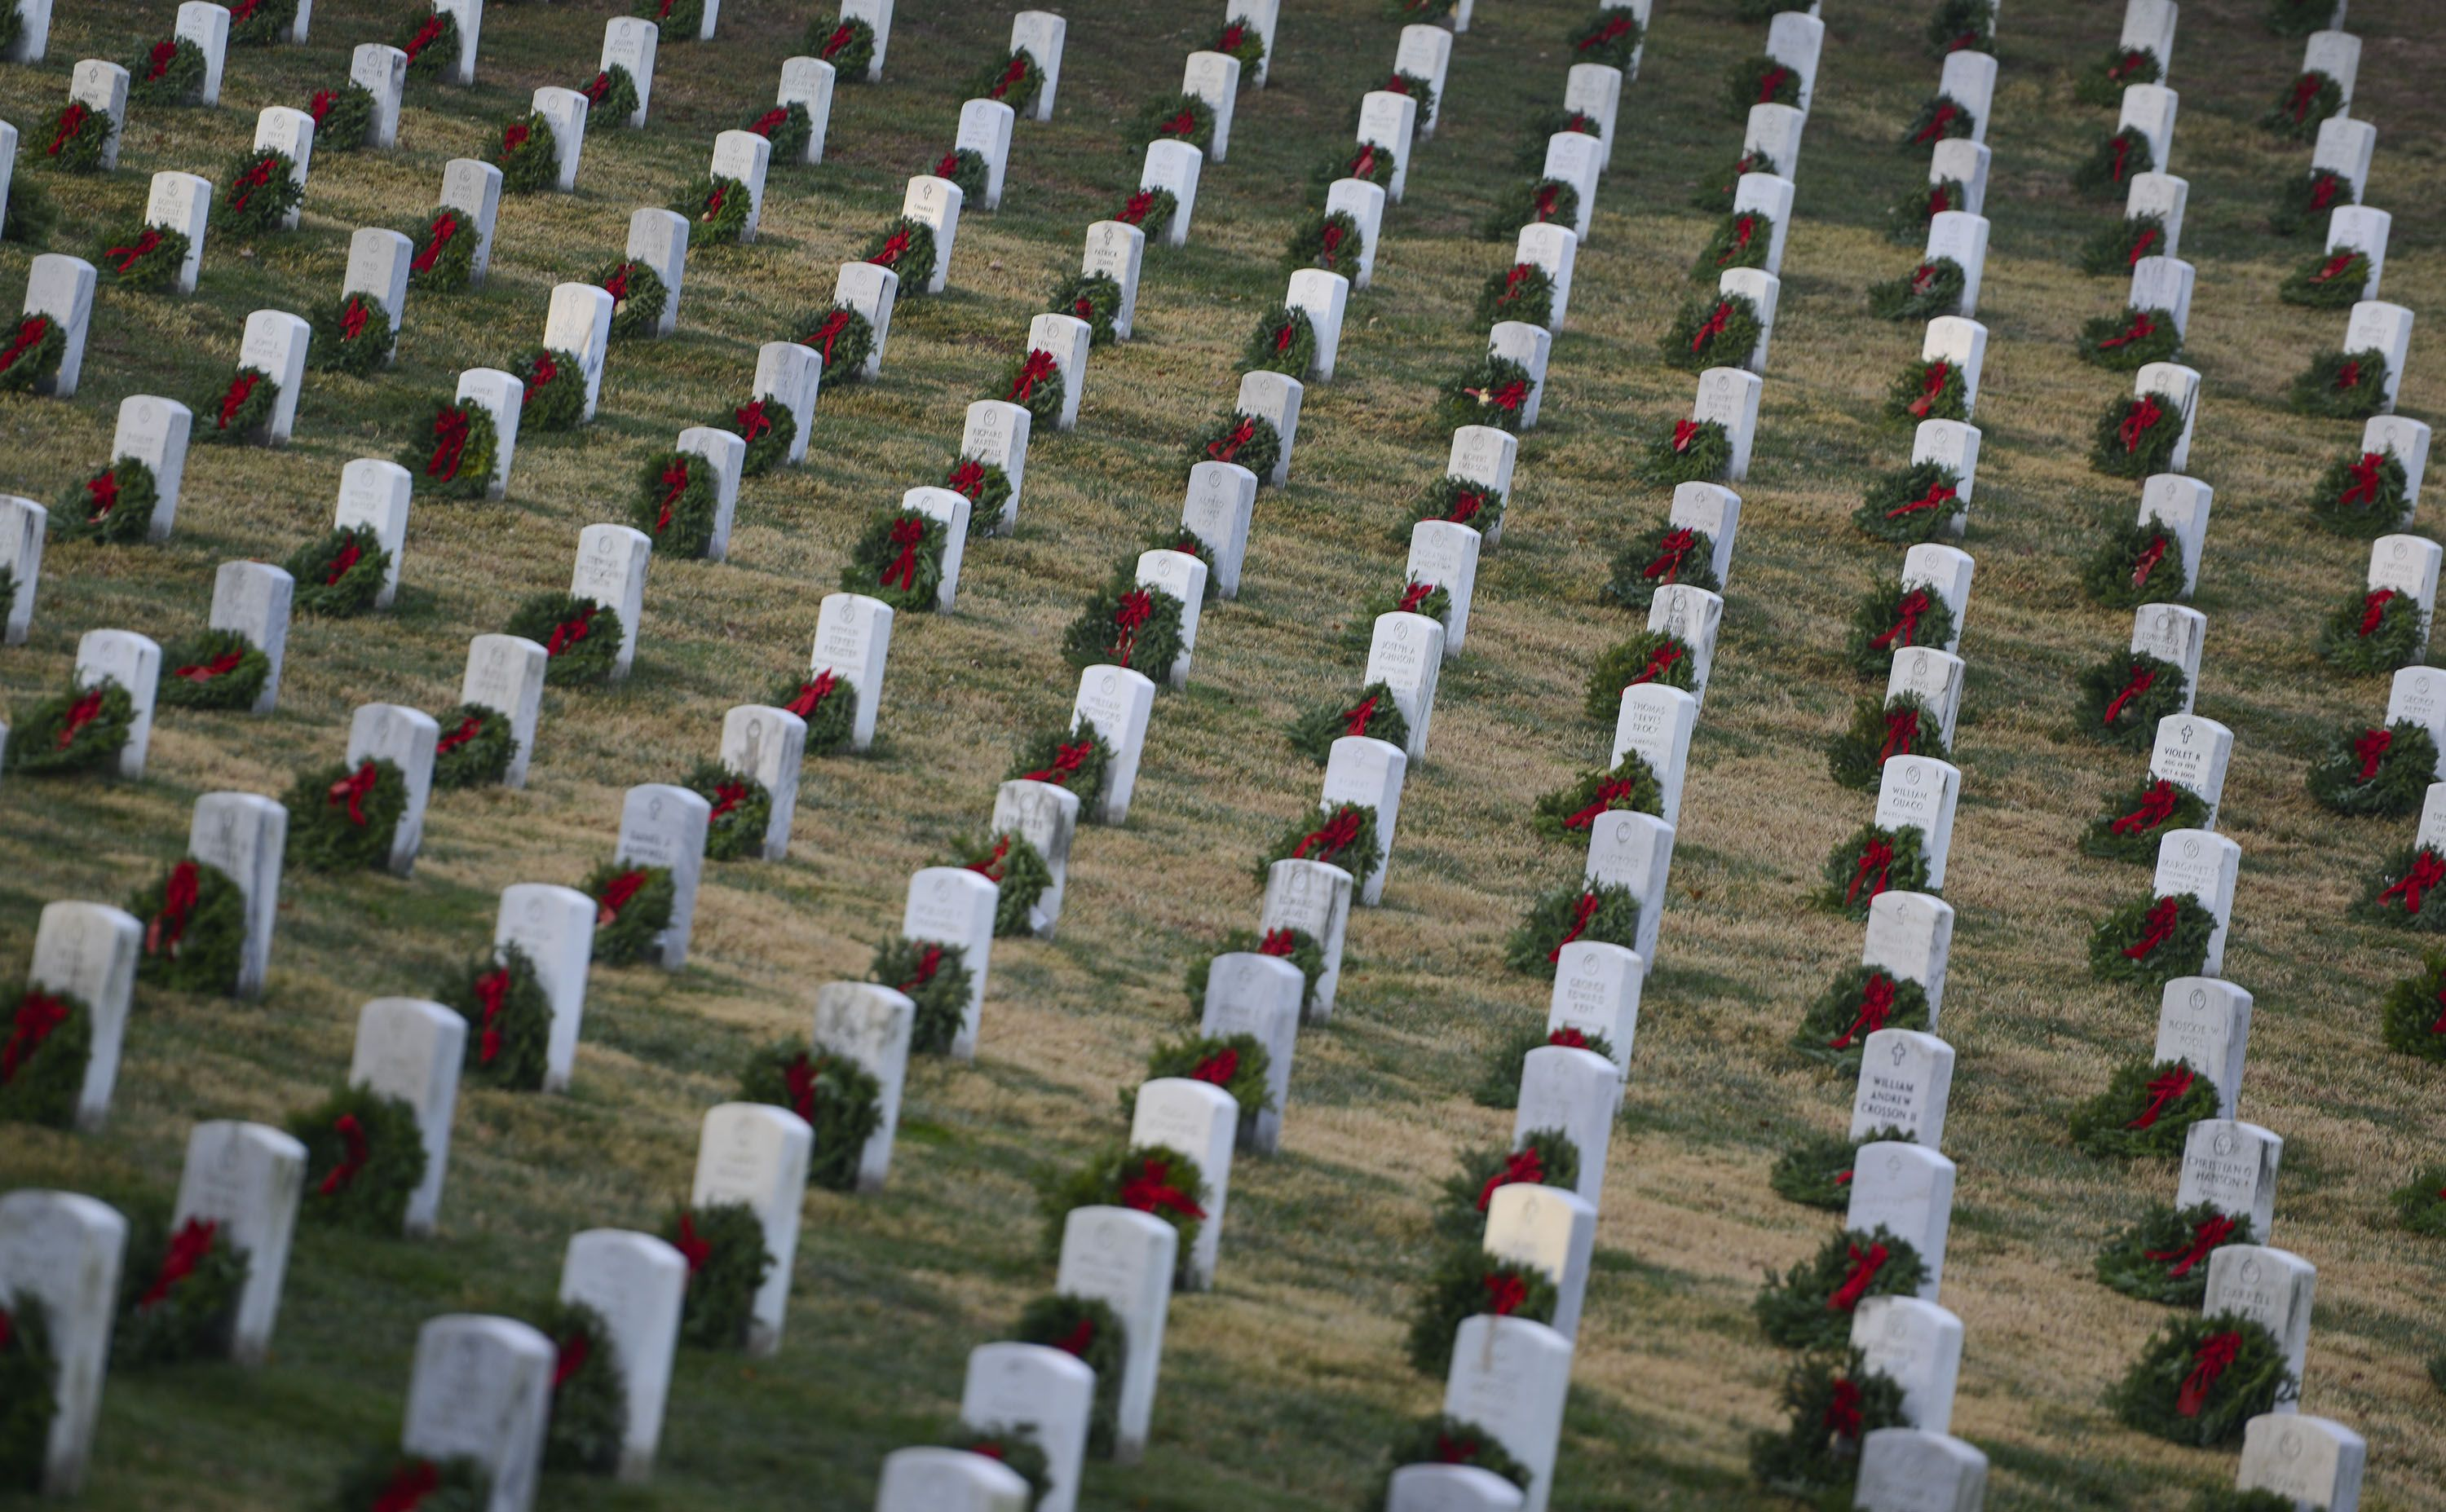 This Weekend, 1.8 Million Wreaths Will Be Laid To Honor U.S. Veterans